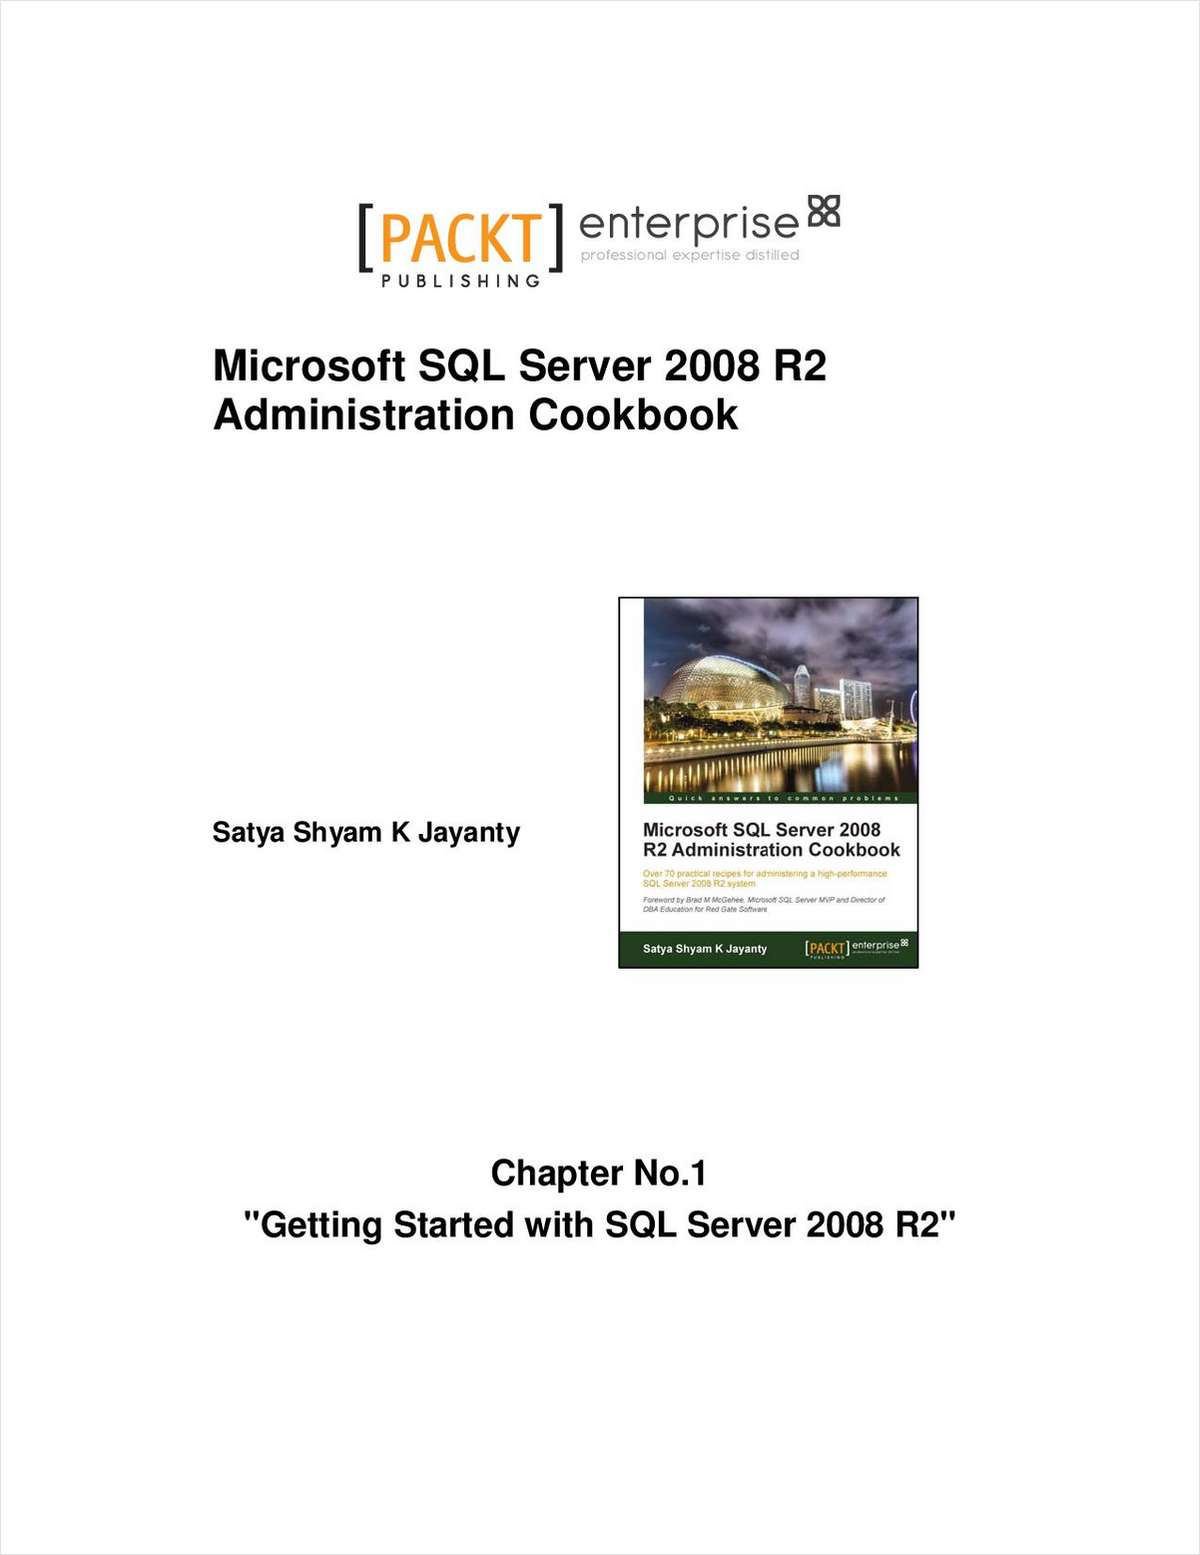 Getting Started with SQL Server 2008 R2 - Free Chapter Microsoft SQL Server 2008 R2 Administration Cookbook